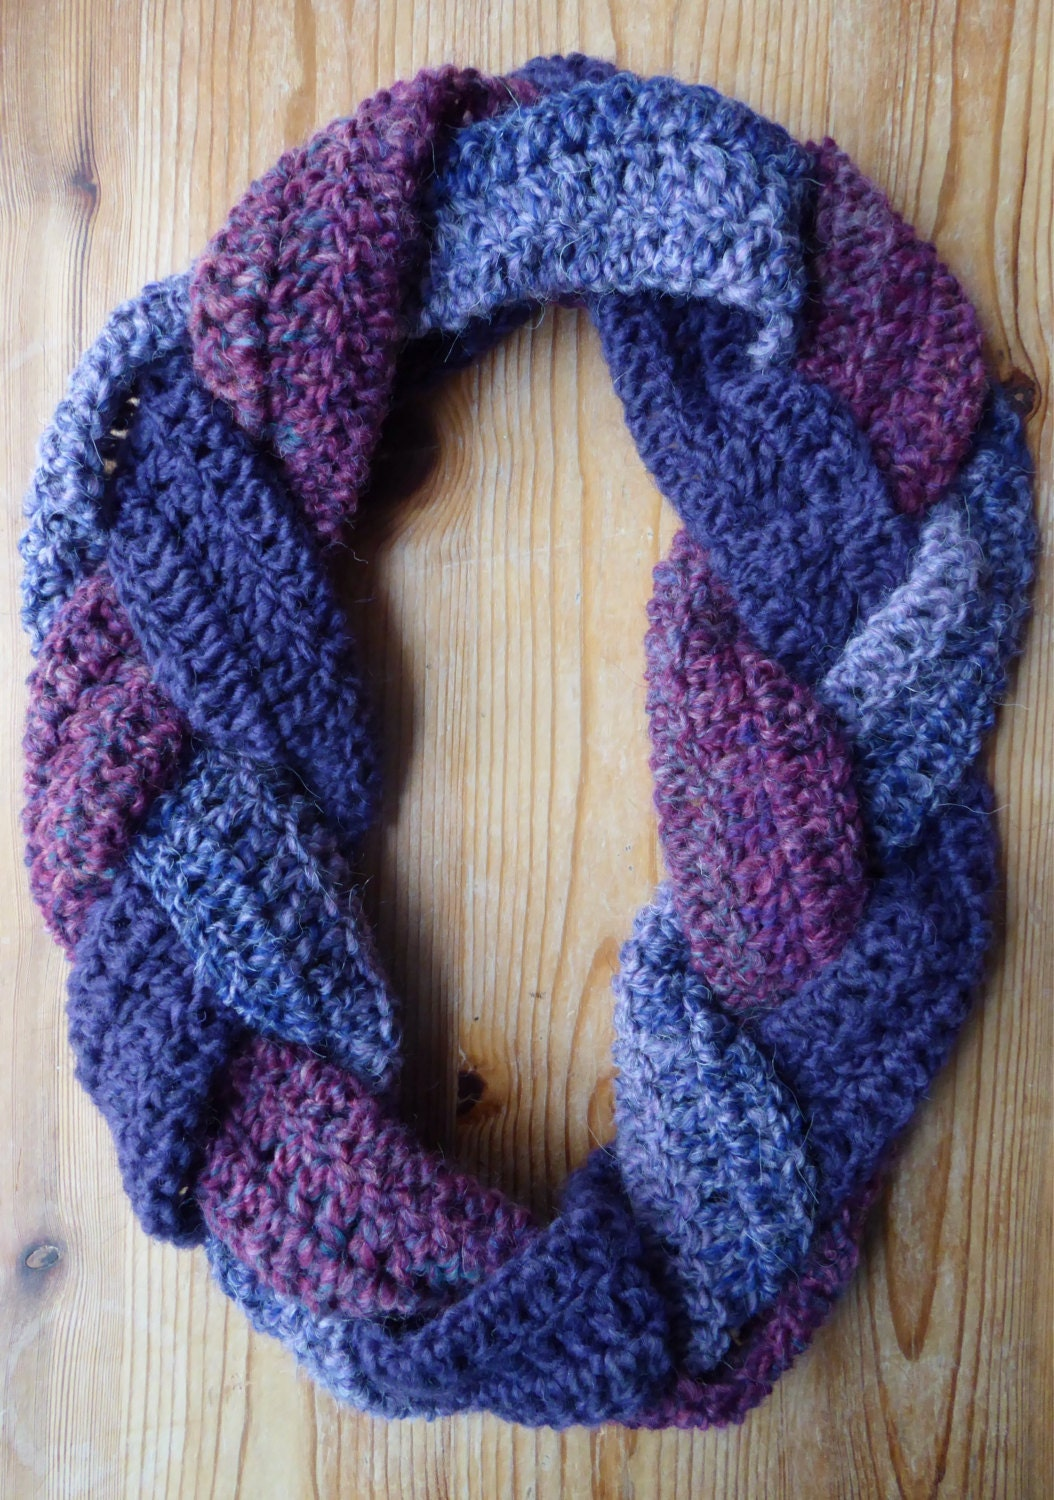 Crochet braided infinity scarf purples/pinks